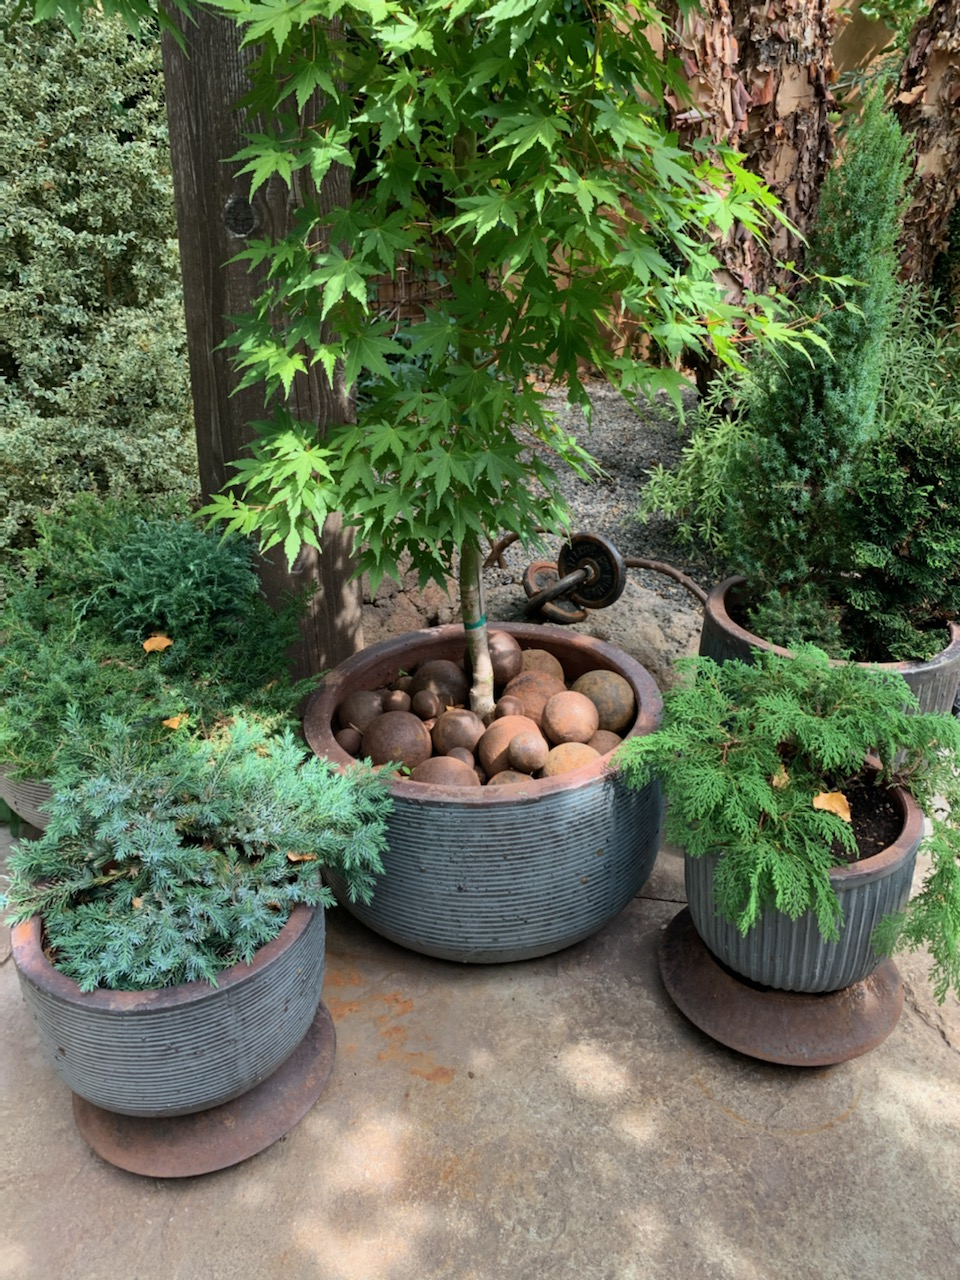 Japanese maple in a pot